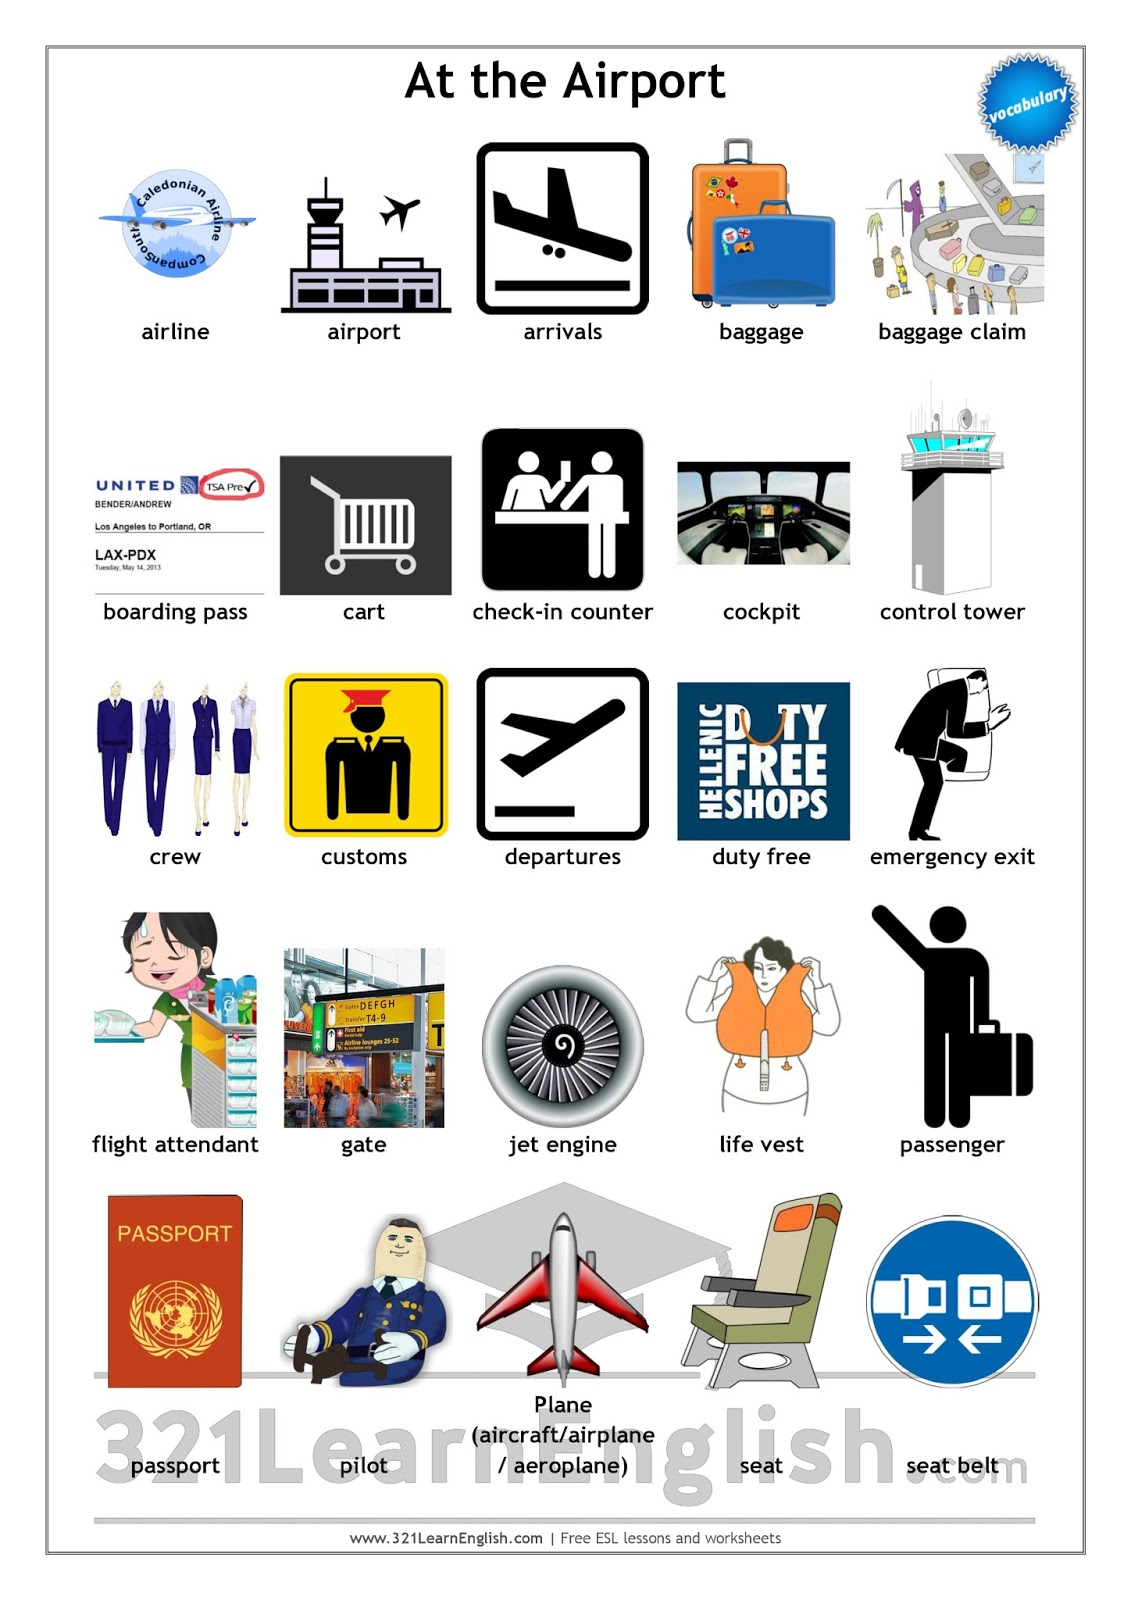 321 Learn English.com: Vocabulary: At the Airport (Level: B1)